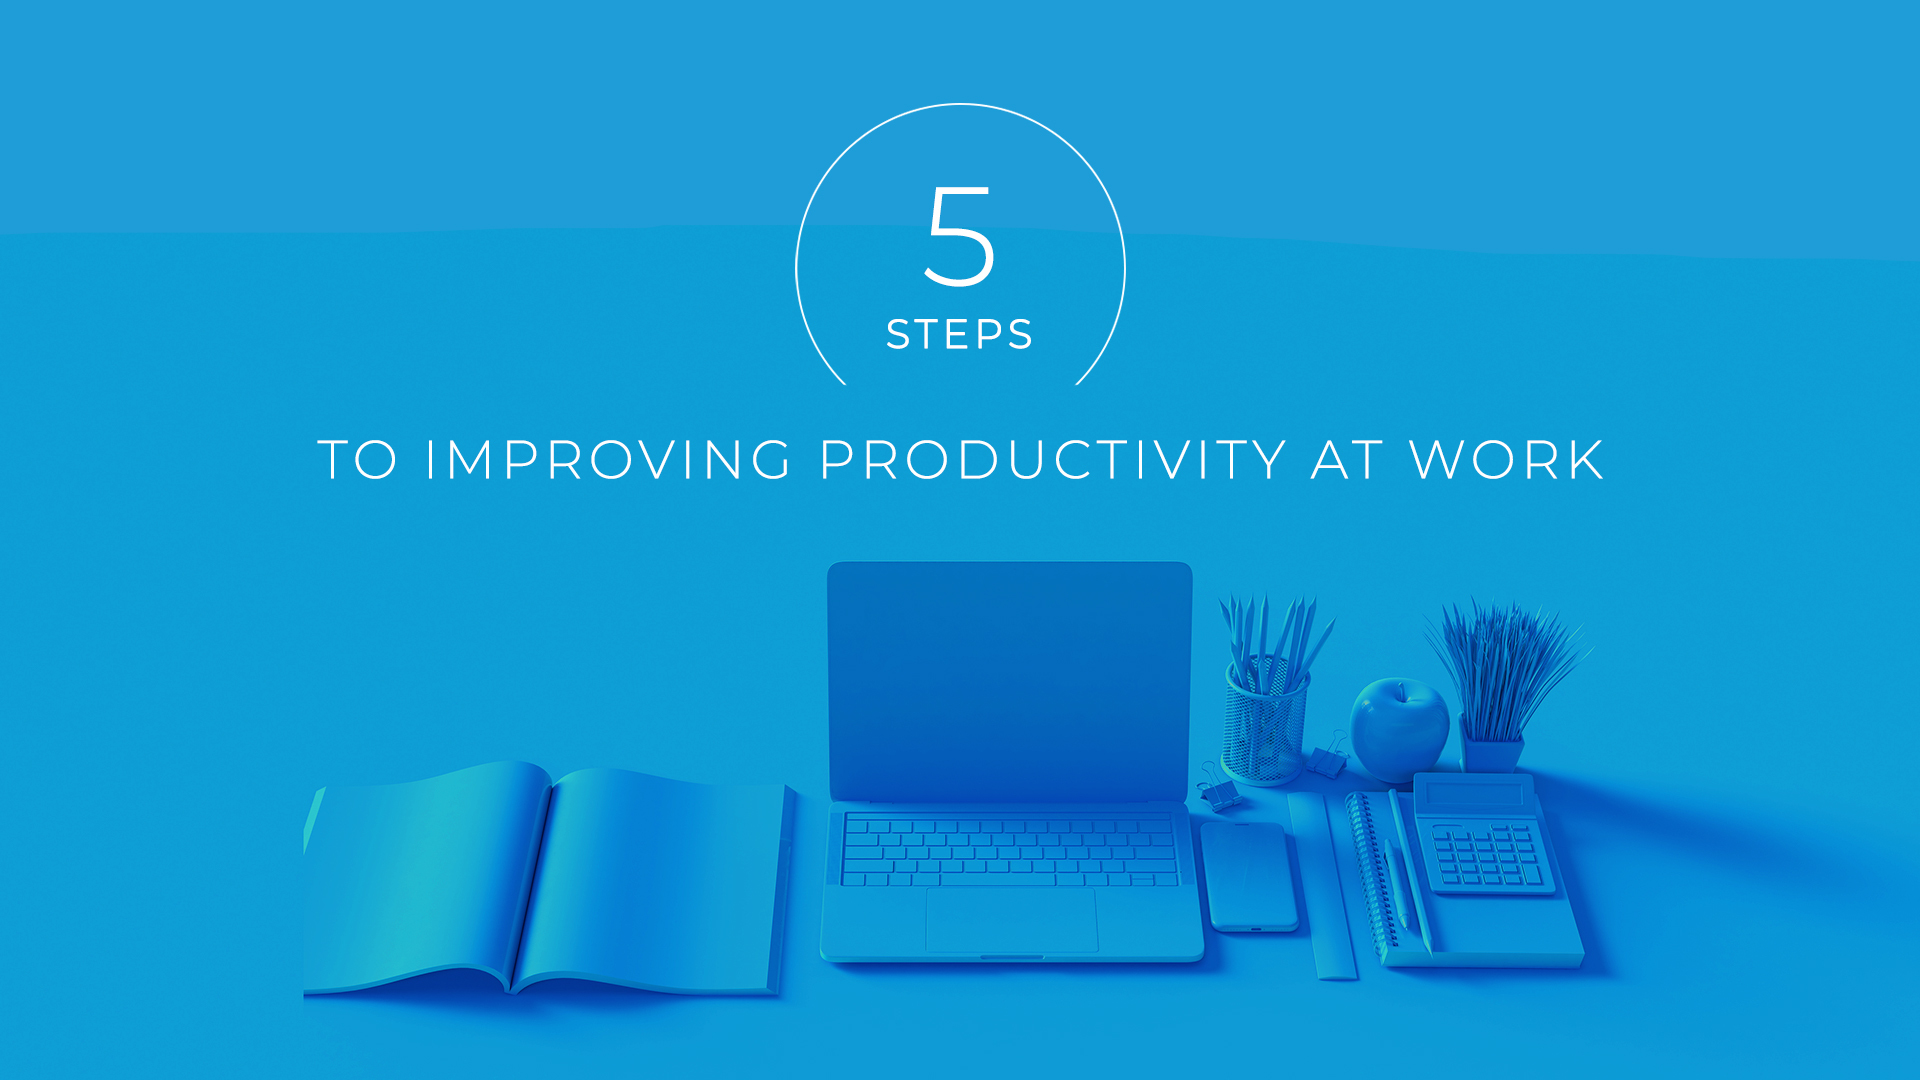 5 Steps to Improving Productivity at Work